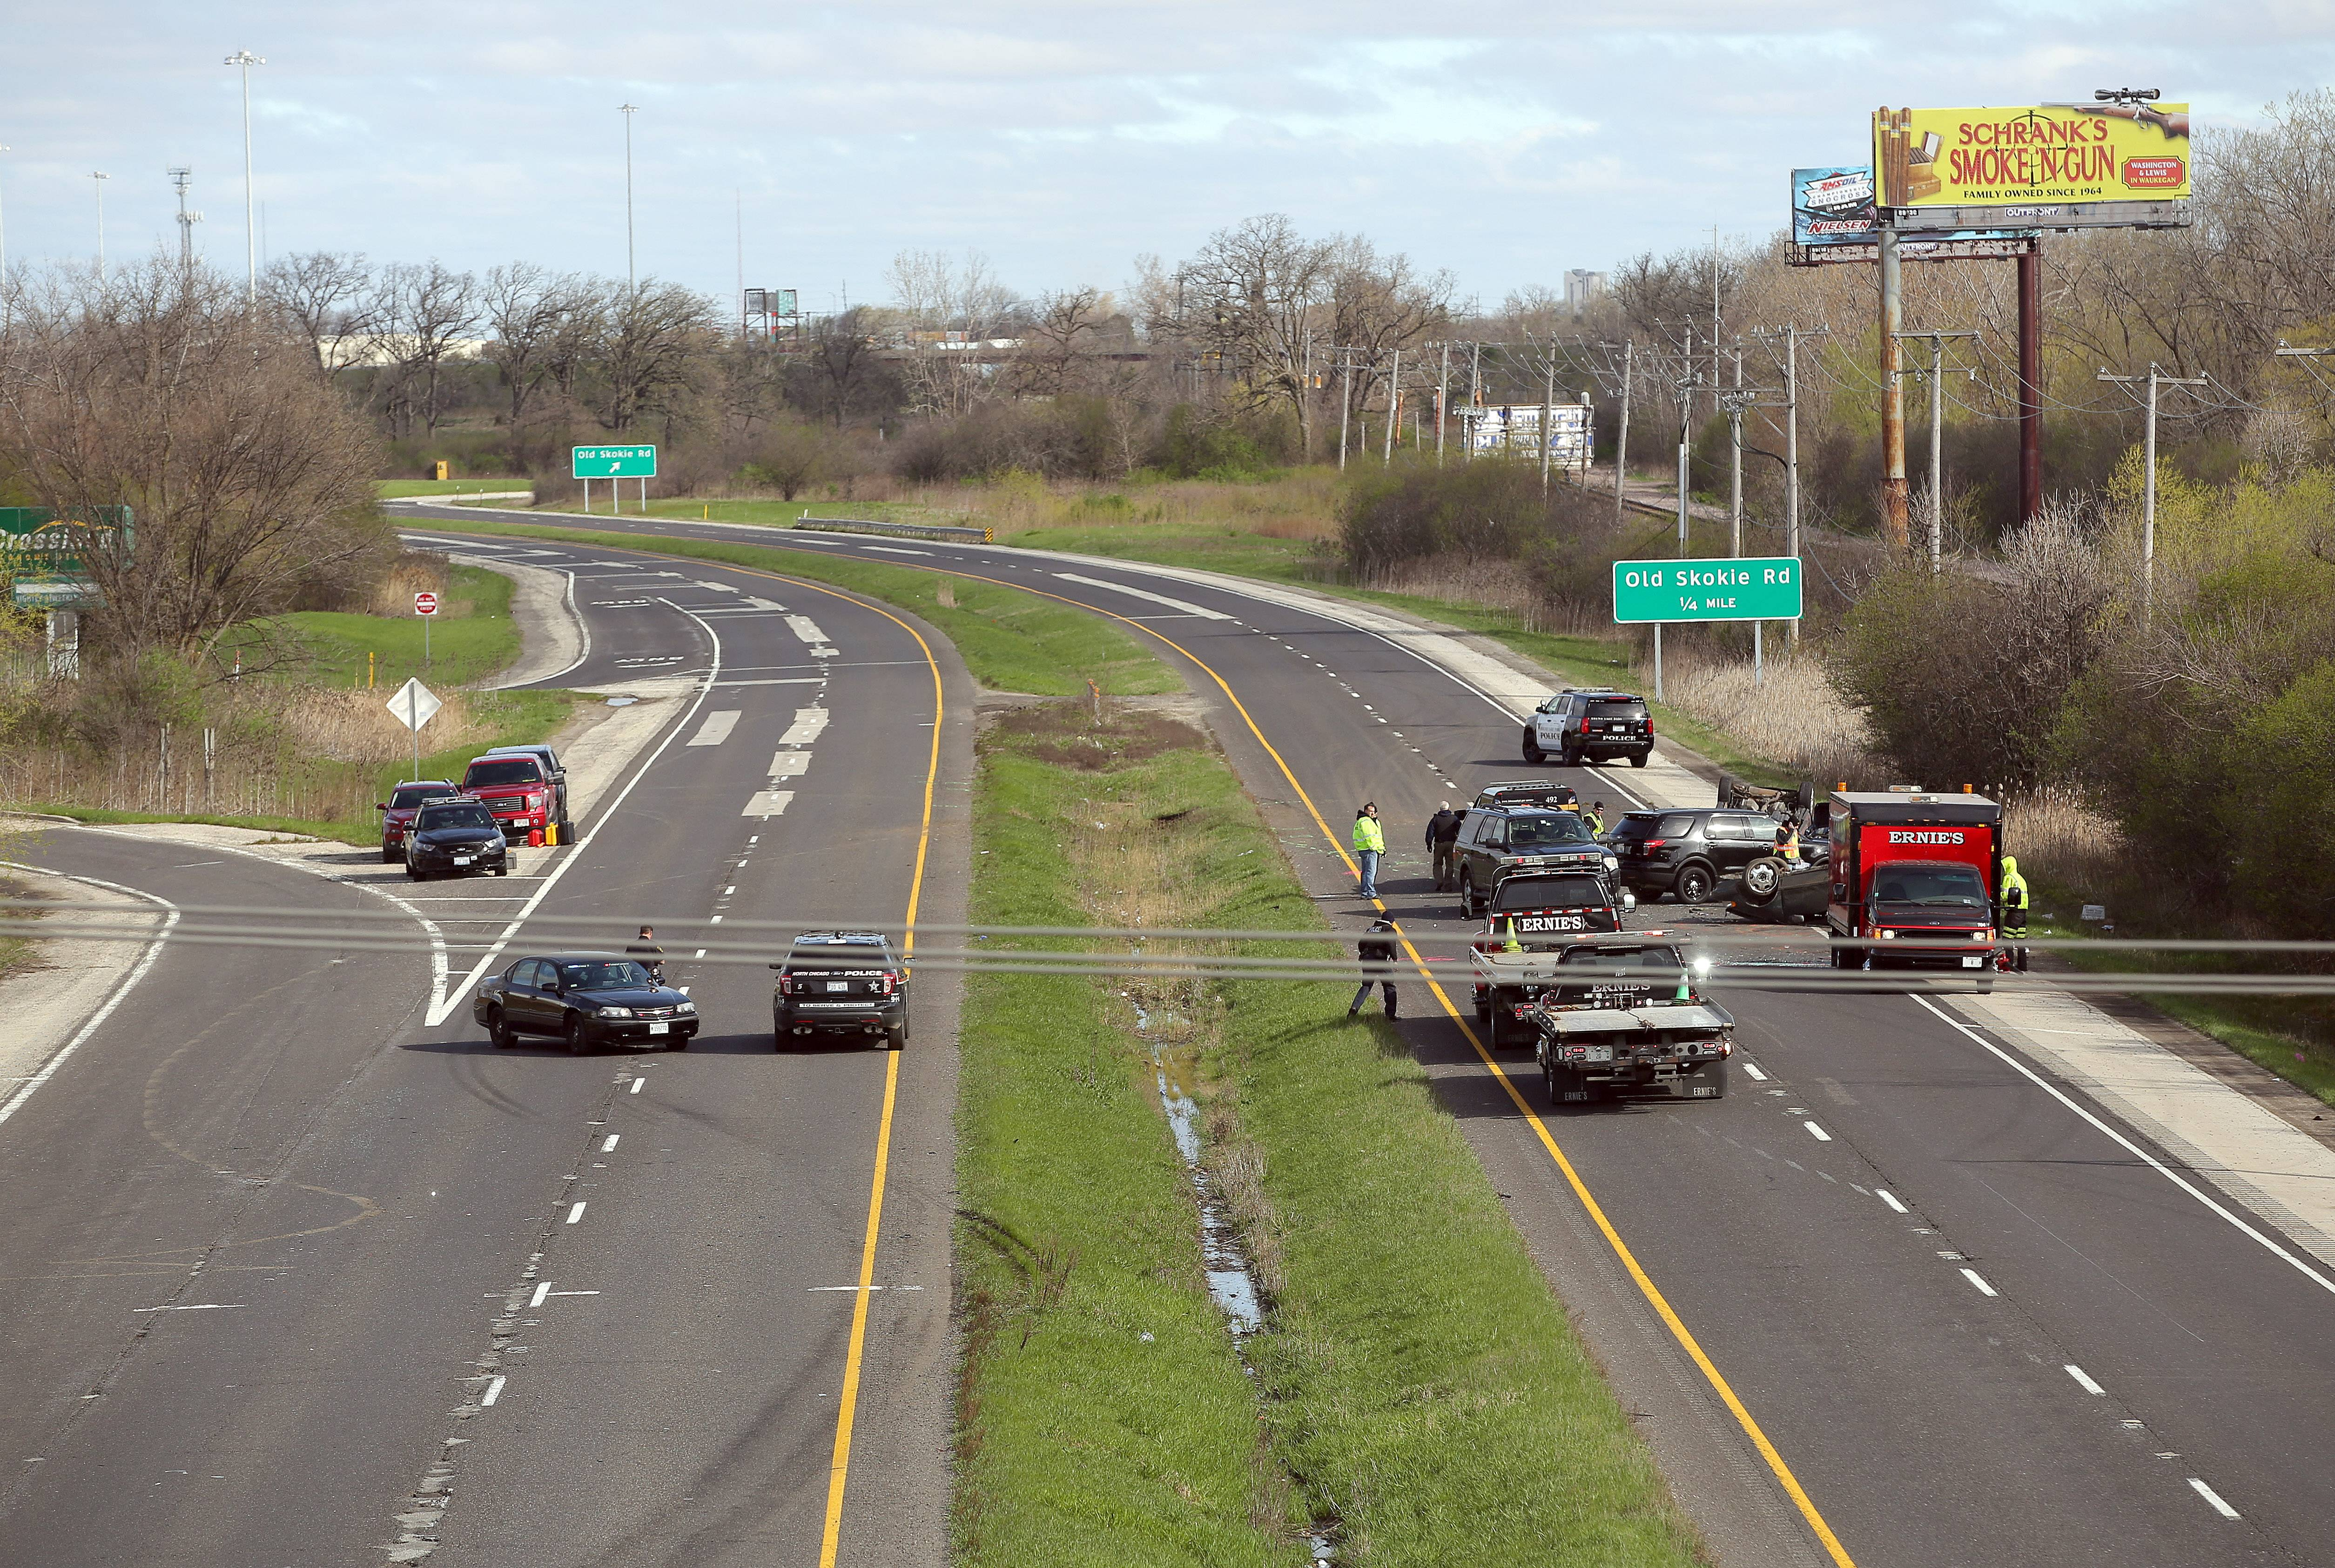 Both sides of Route 41 were closed between Route 120 and Martin Luther King Drive in North Chicago Friday after a fatal accident.